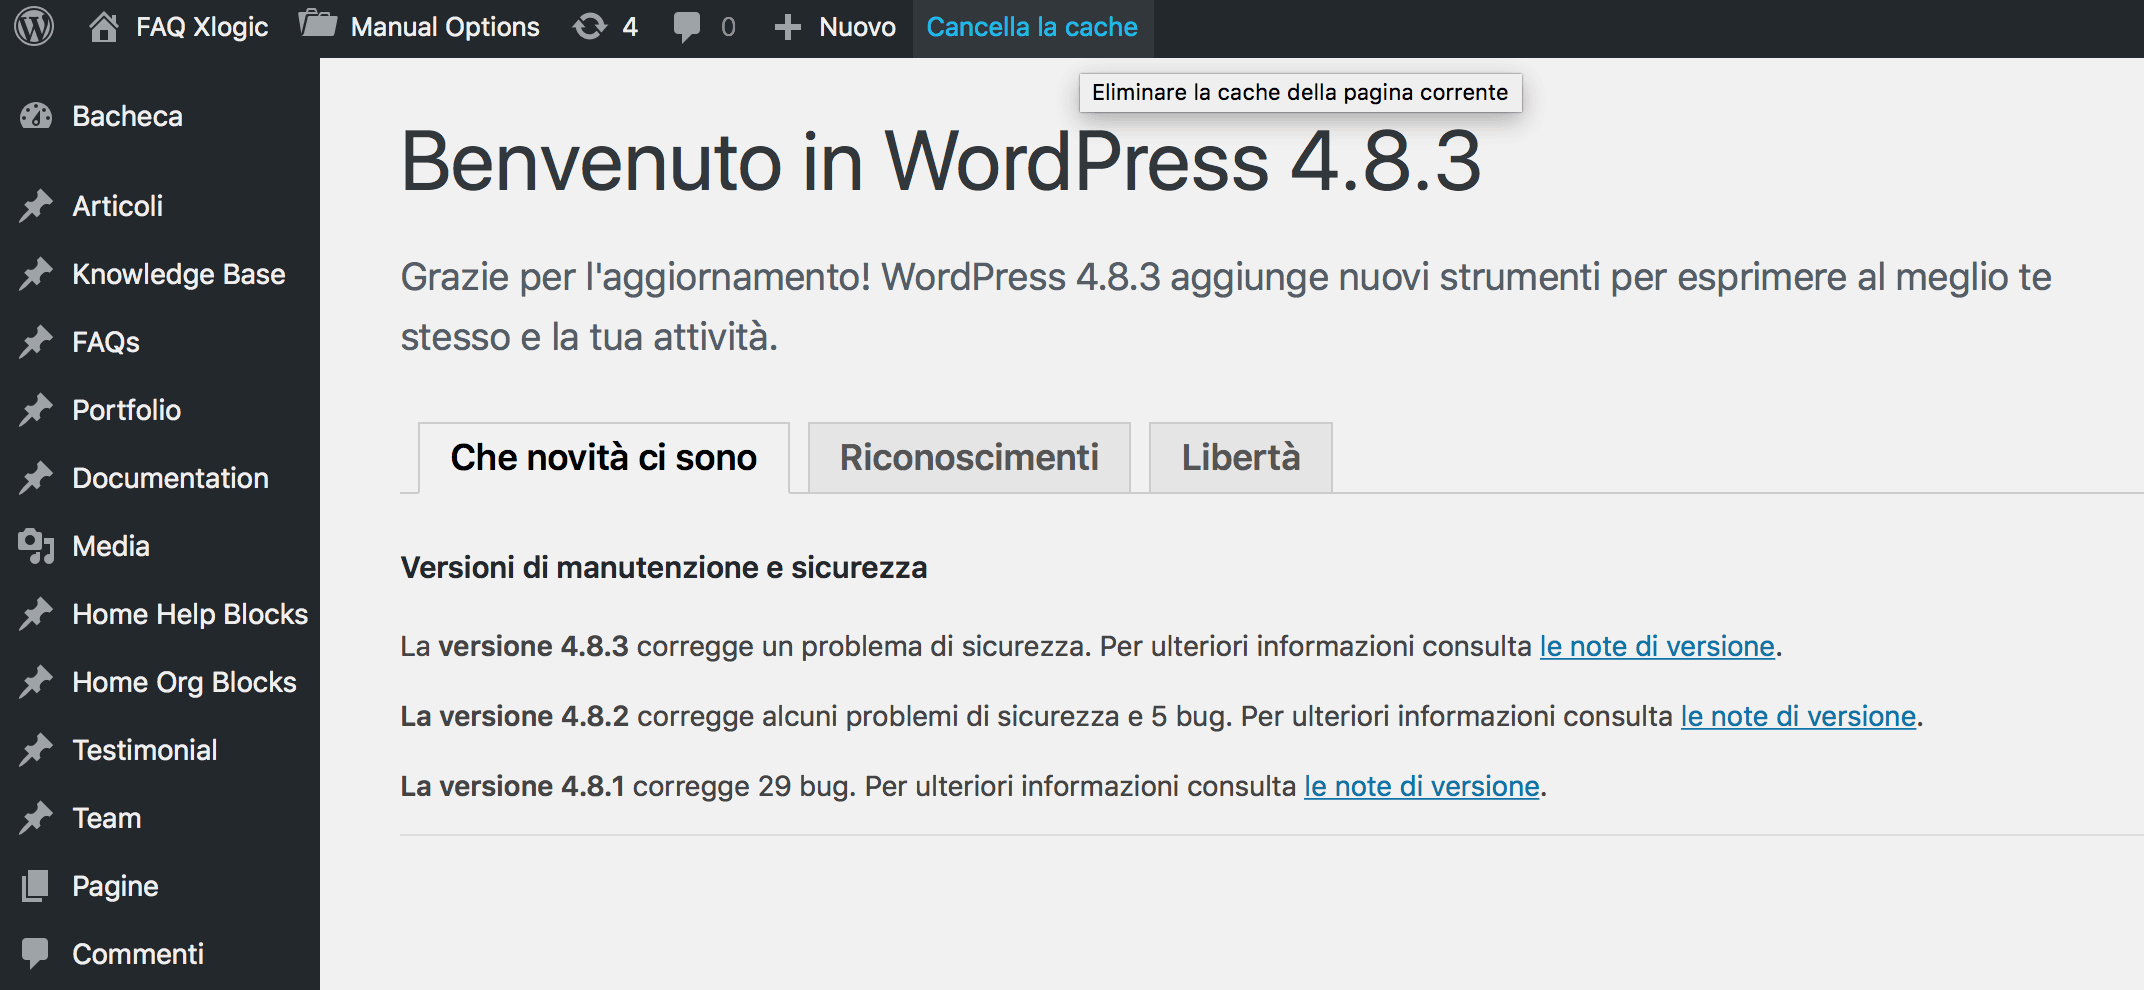 Come cancellare la cache di WordPress